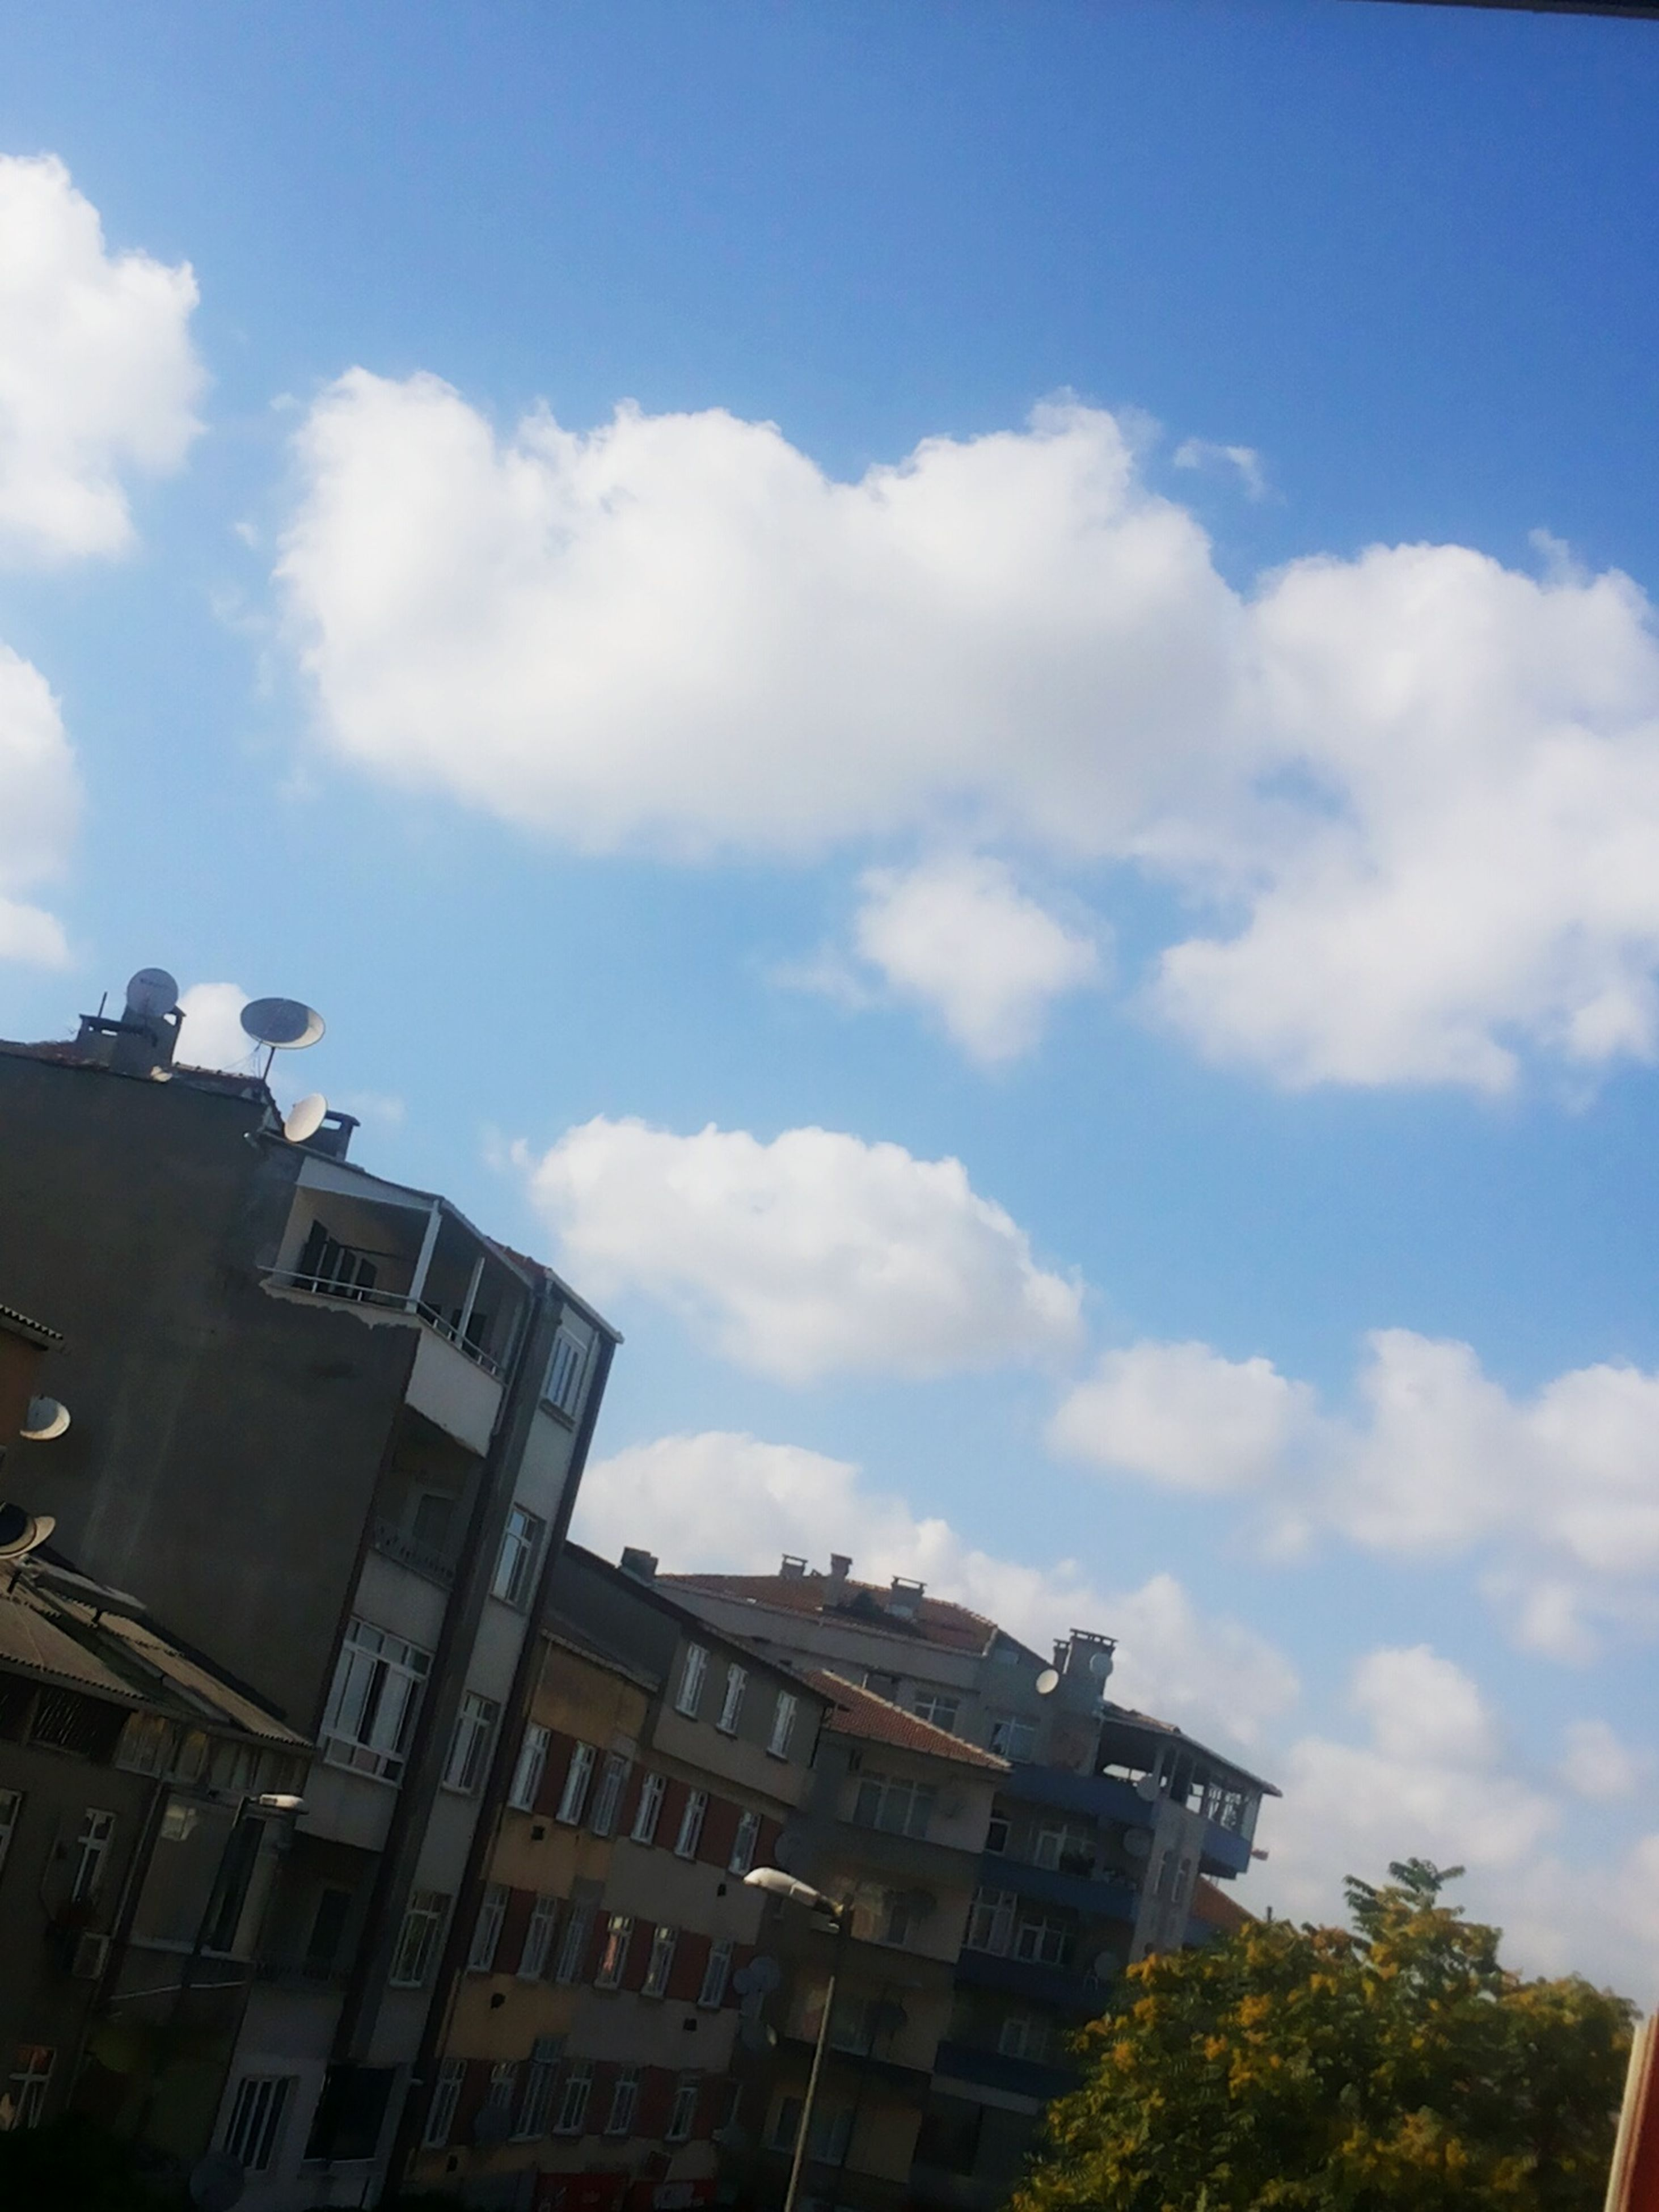 building exterior, architecture, built structure, sky, low angle view, cloud - sky, residential building, residential structure, blue, cloud, building, house, city, day, outdoors, cloudy, no people, high section, sunlight, window